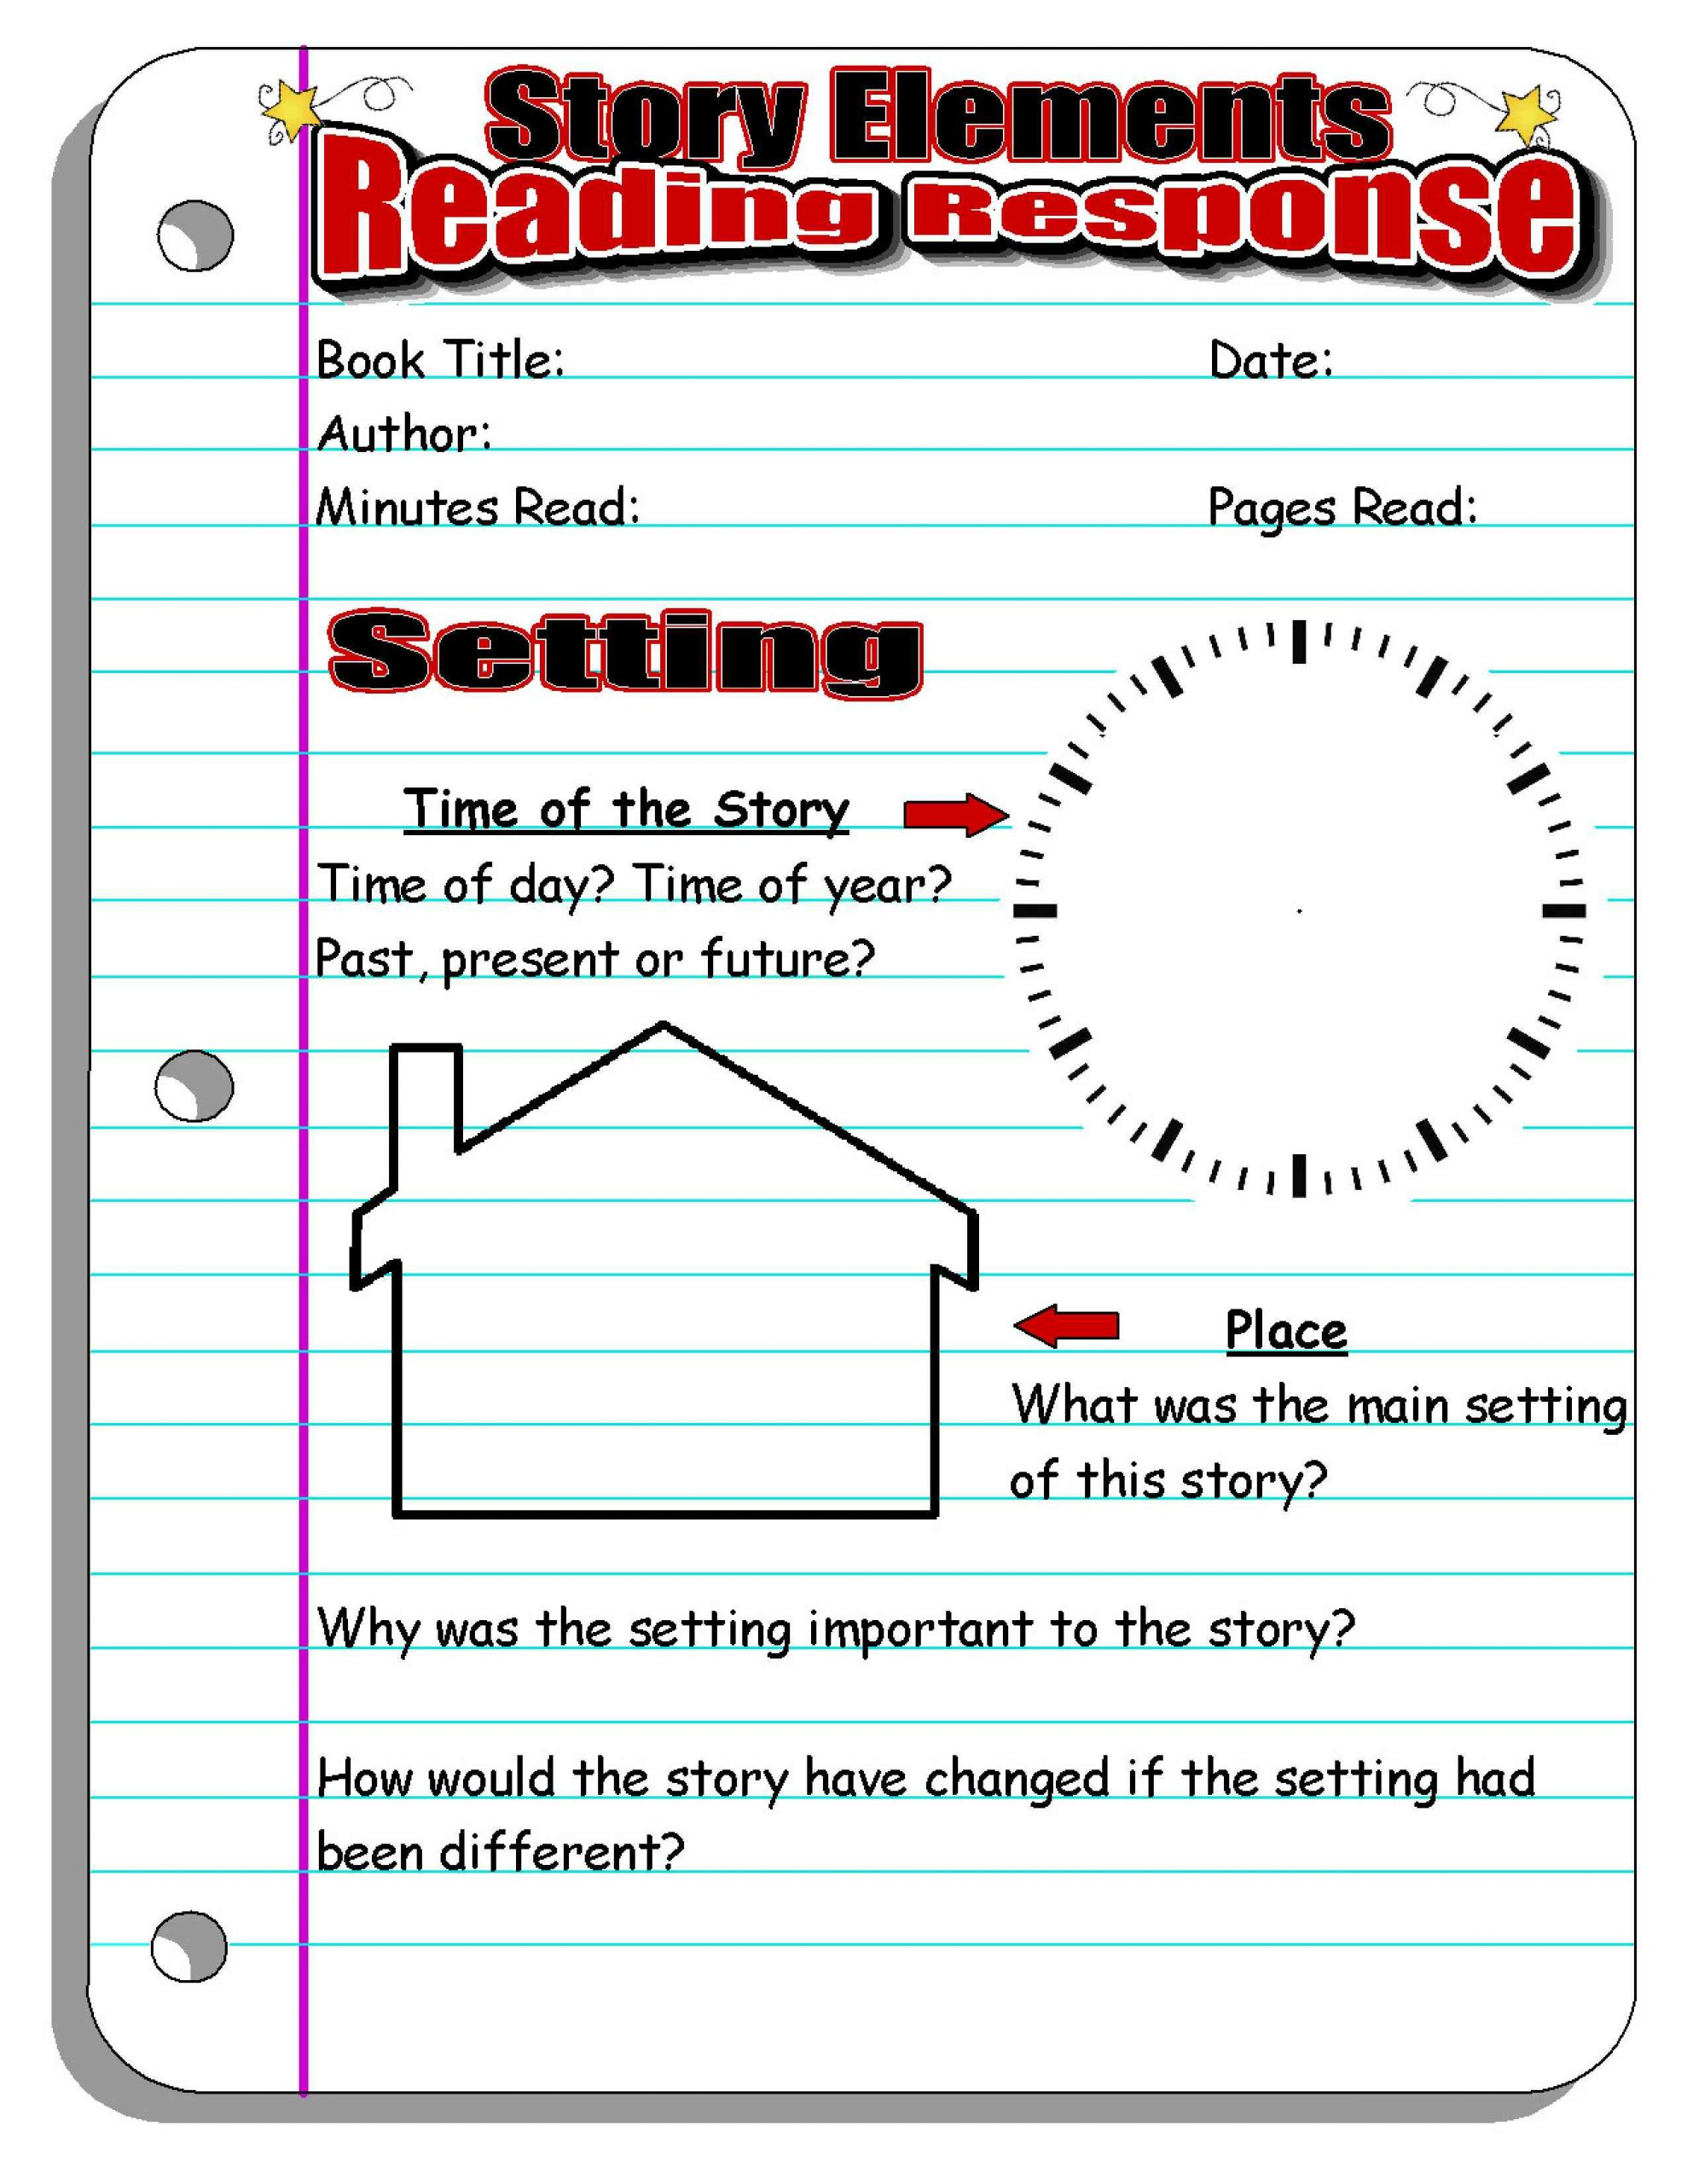 Read and Respond Worksheets Reading Response forms and Graphic organizers